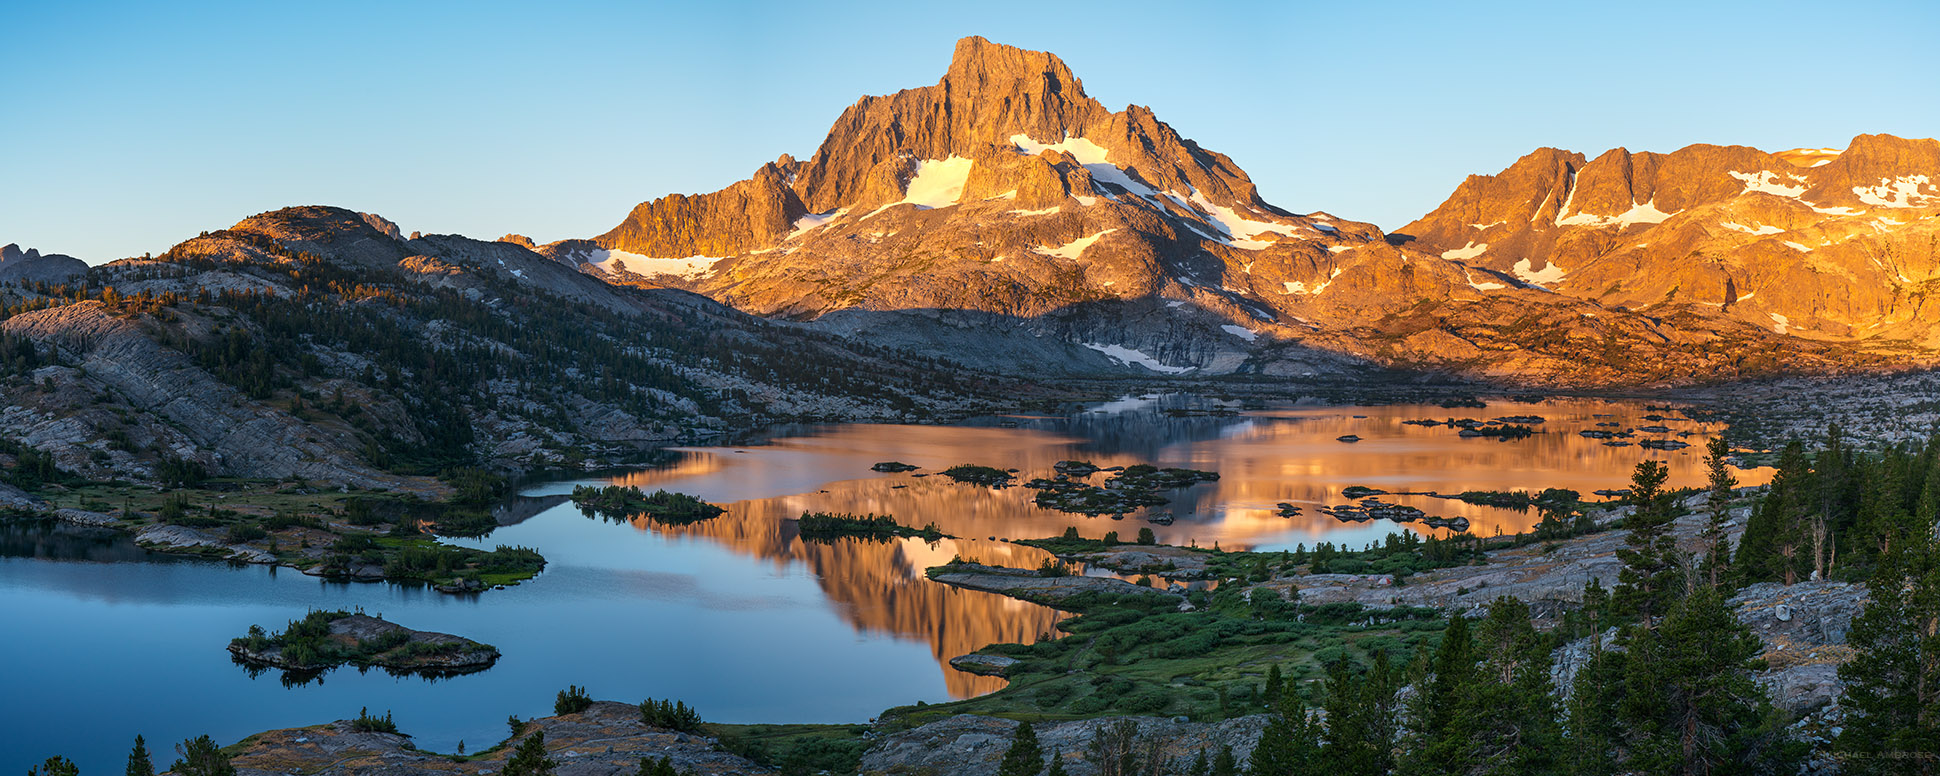 n late July 2020 Kristen and I walked up to Thousand Island Lake in the phenomenal Ansel Adams Wilderness. As we progressed from...